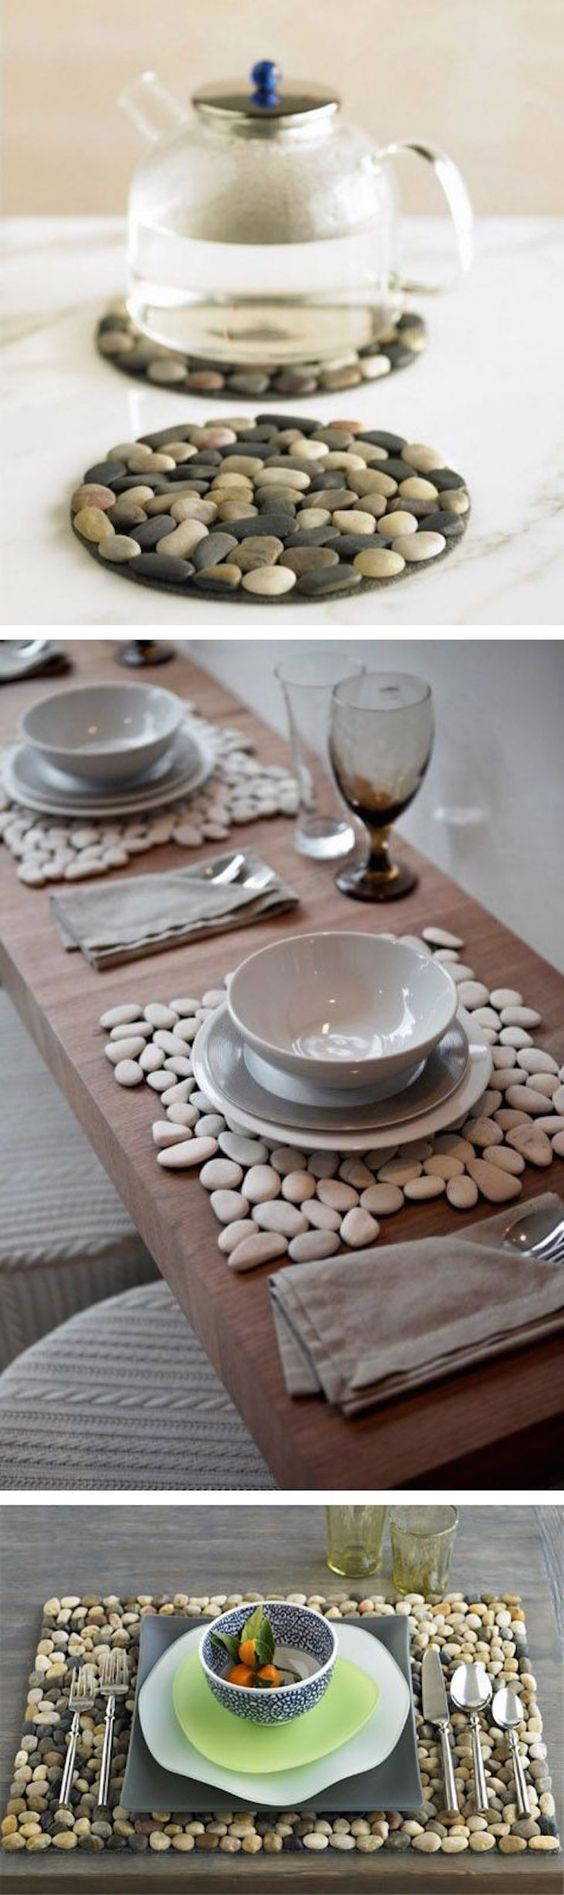 TOP 10 Beautiful Ways To Decorate With Pebbles – Sereena Chaves